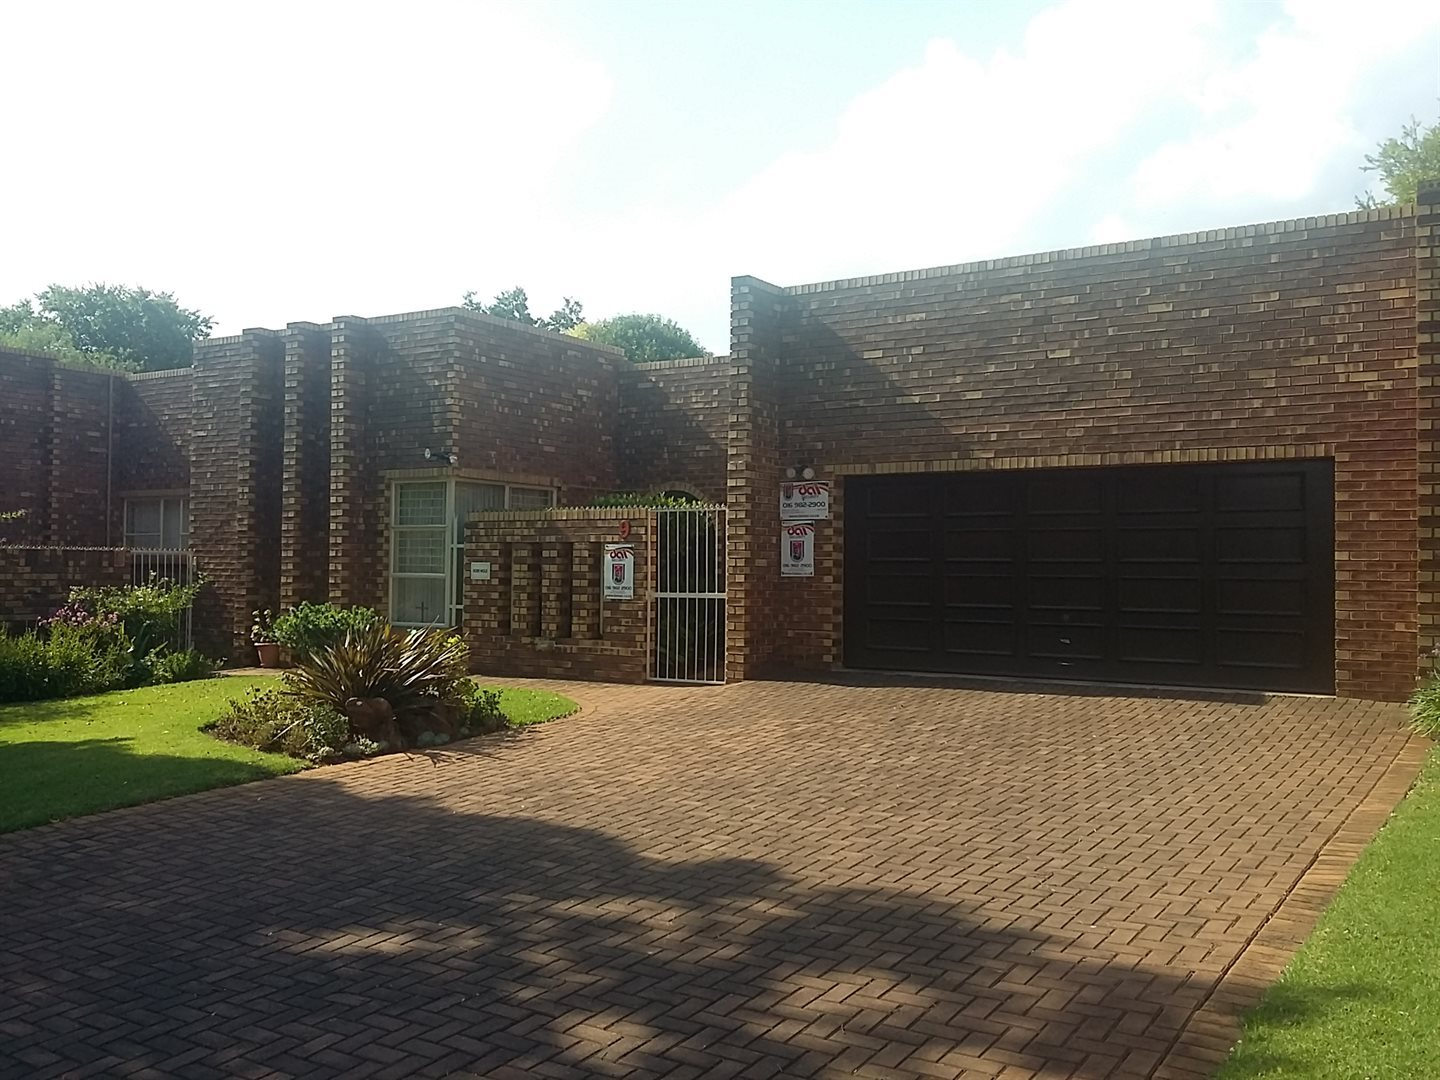 Vanderbijlpark, Vanderbijlpark Se3 Property  | Houses For Sale Vanderbijlpark Se3, Vanderbijlpark Se3, House 4 bedrooms property for sale Price:2,050,000